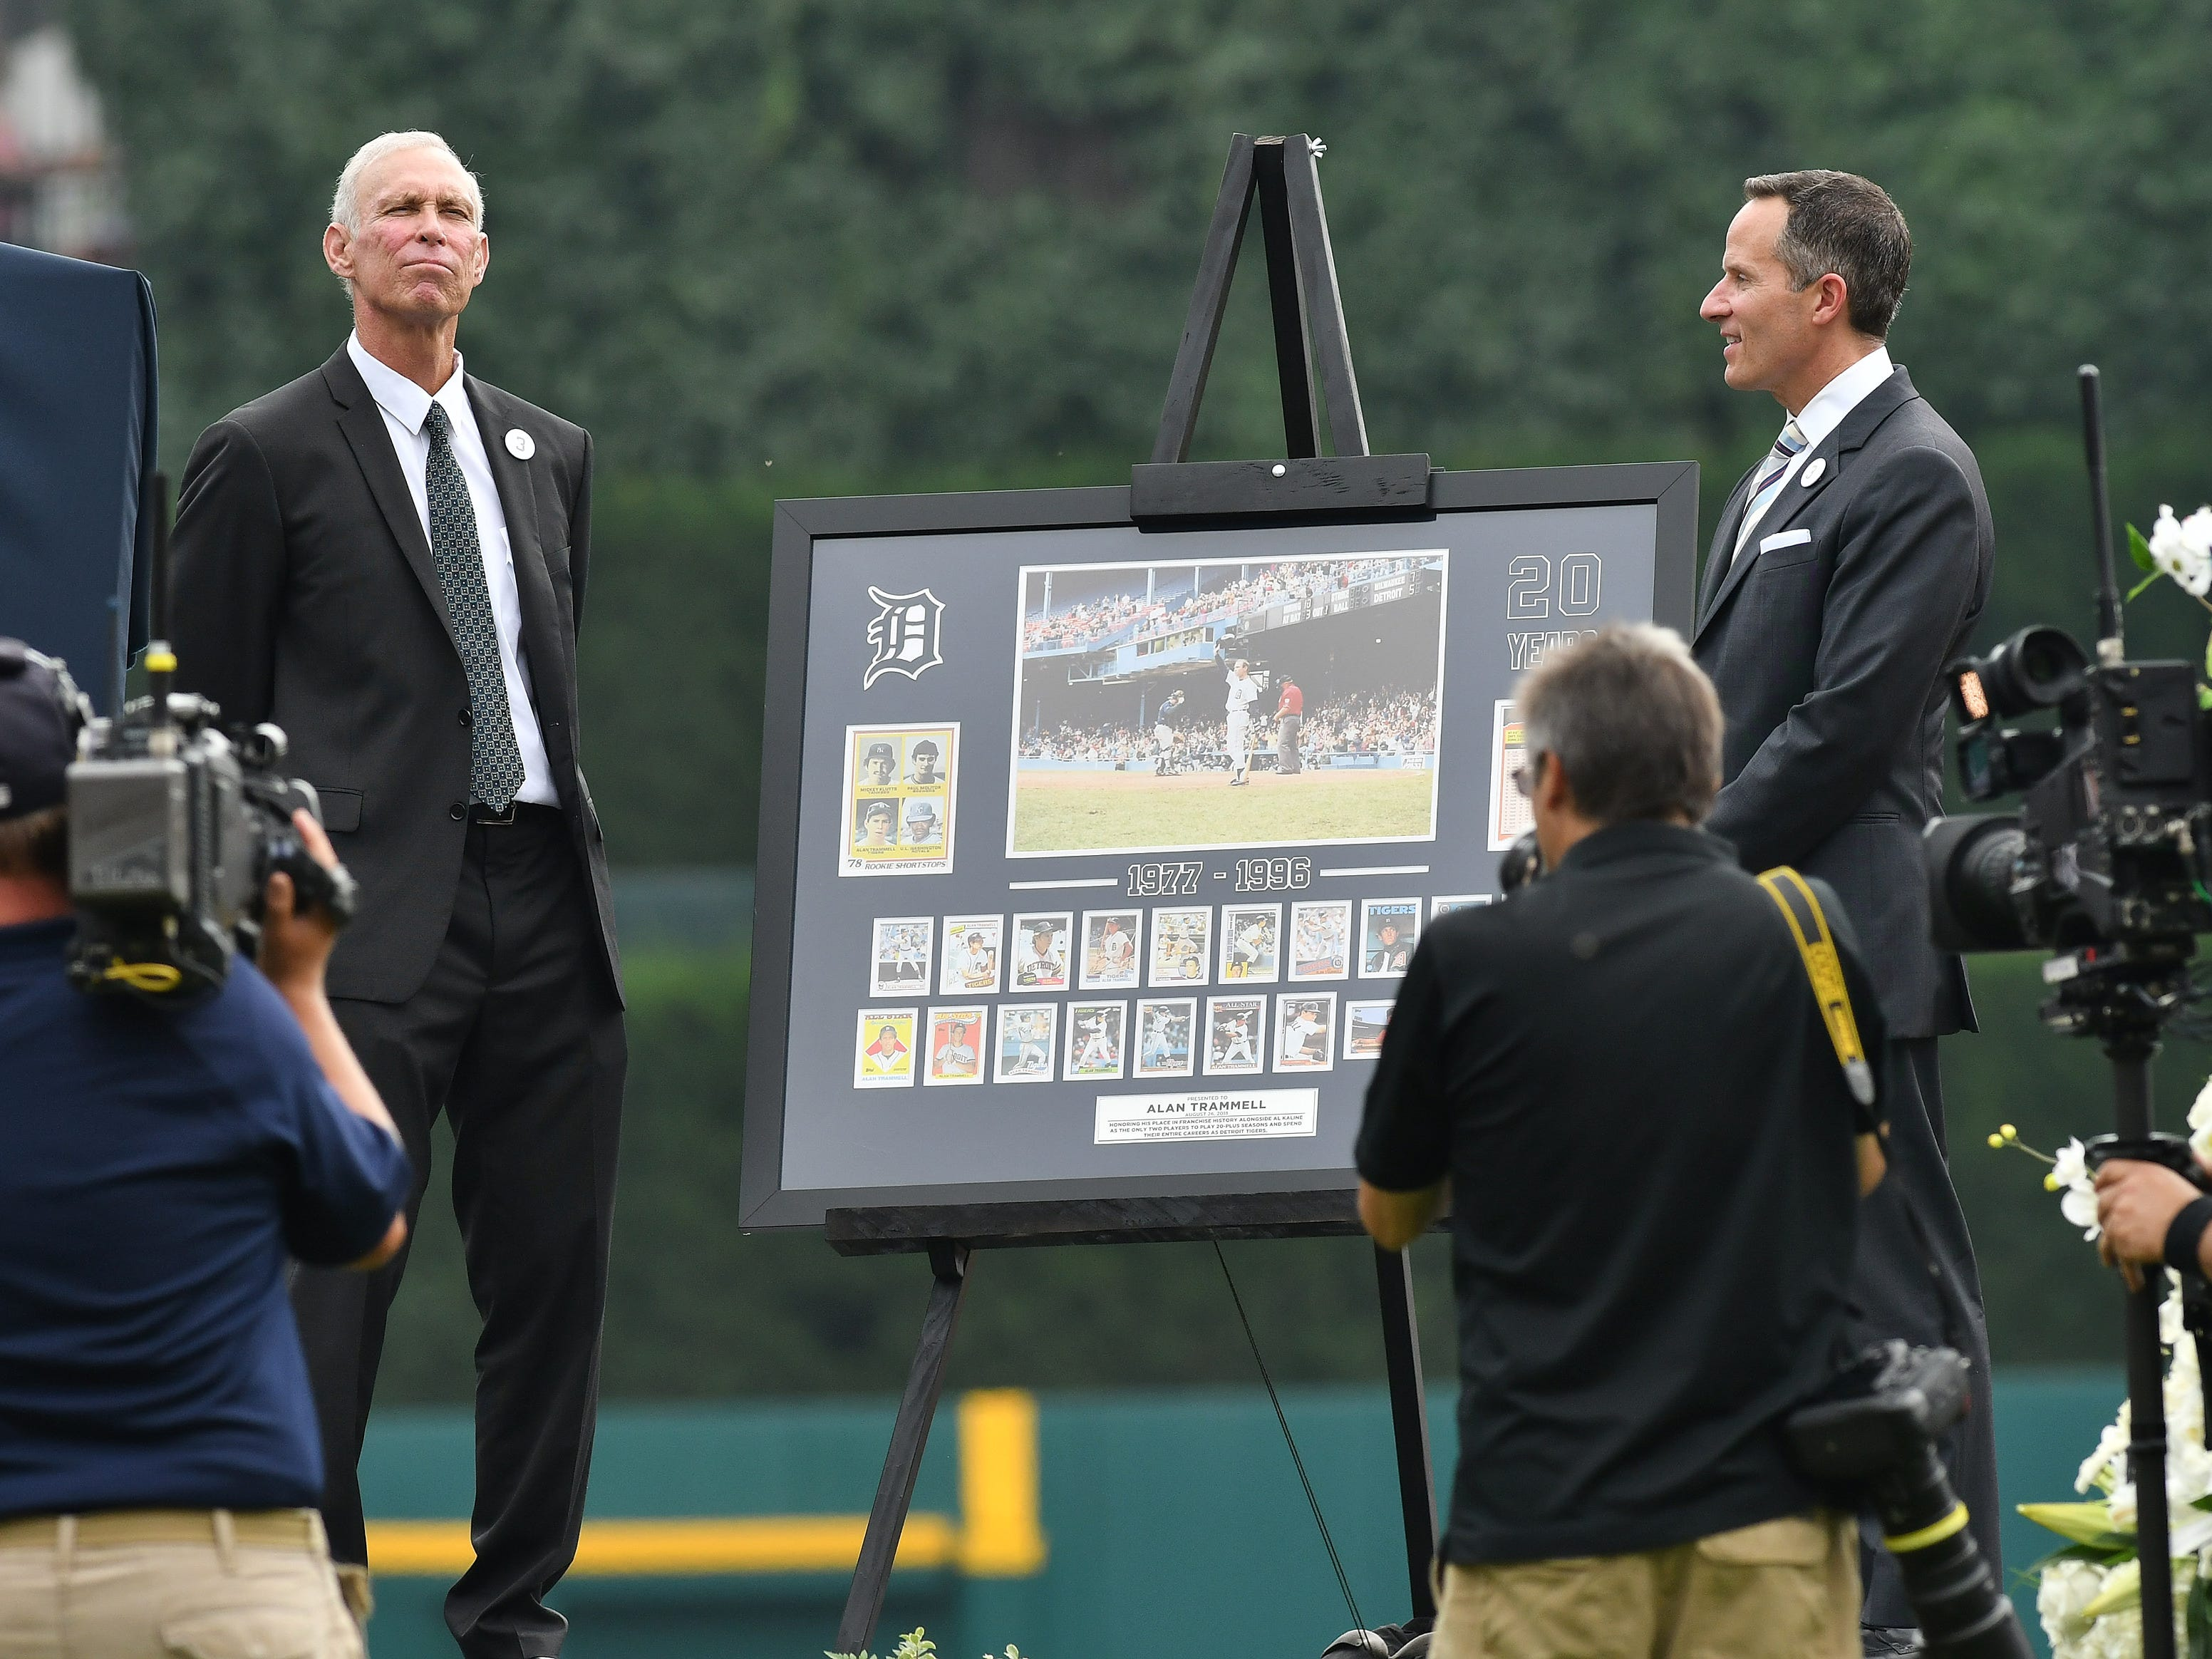 President and CEO of Ilitch Holdings, Inc. Chris Ilitch, right, presents Alan Trammell with a framed collection of his baseball cards during a special pregame ceremony to retire Trammell's No. 3.